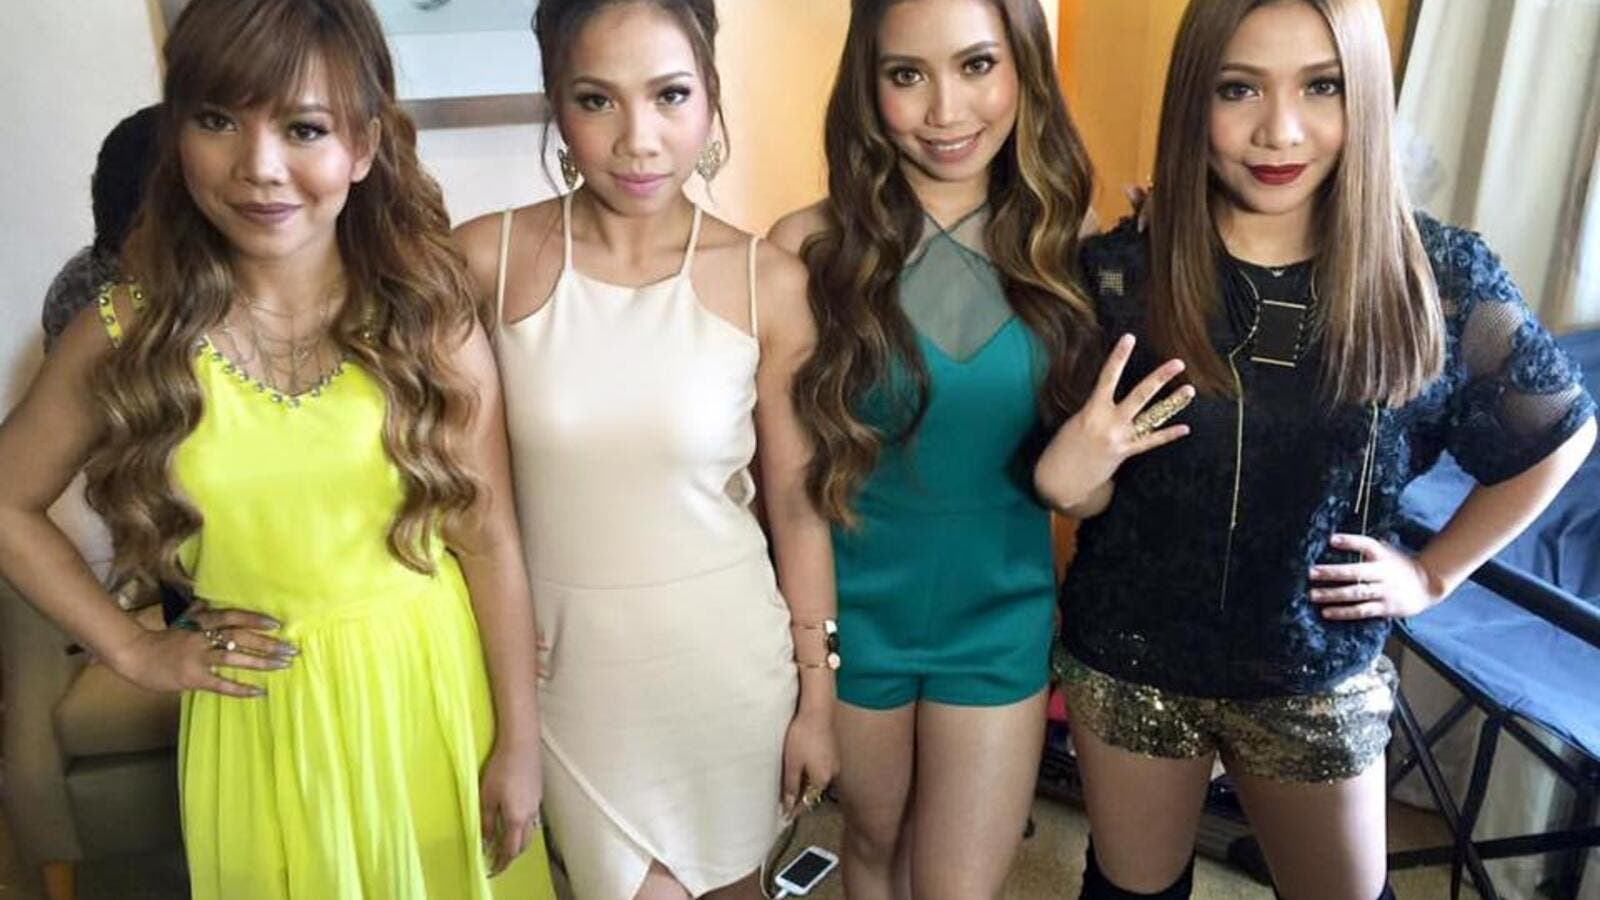 Filipino girl group return due to high demand following their April concert in the UAE. (File photo)